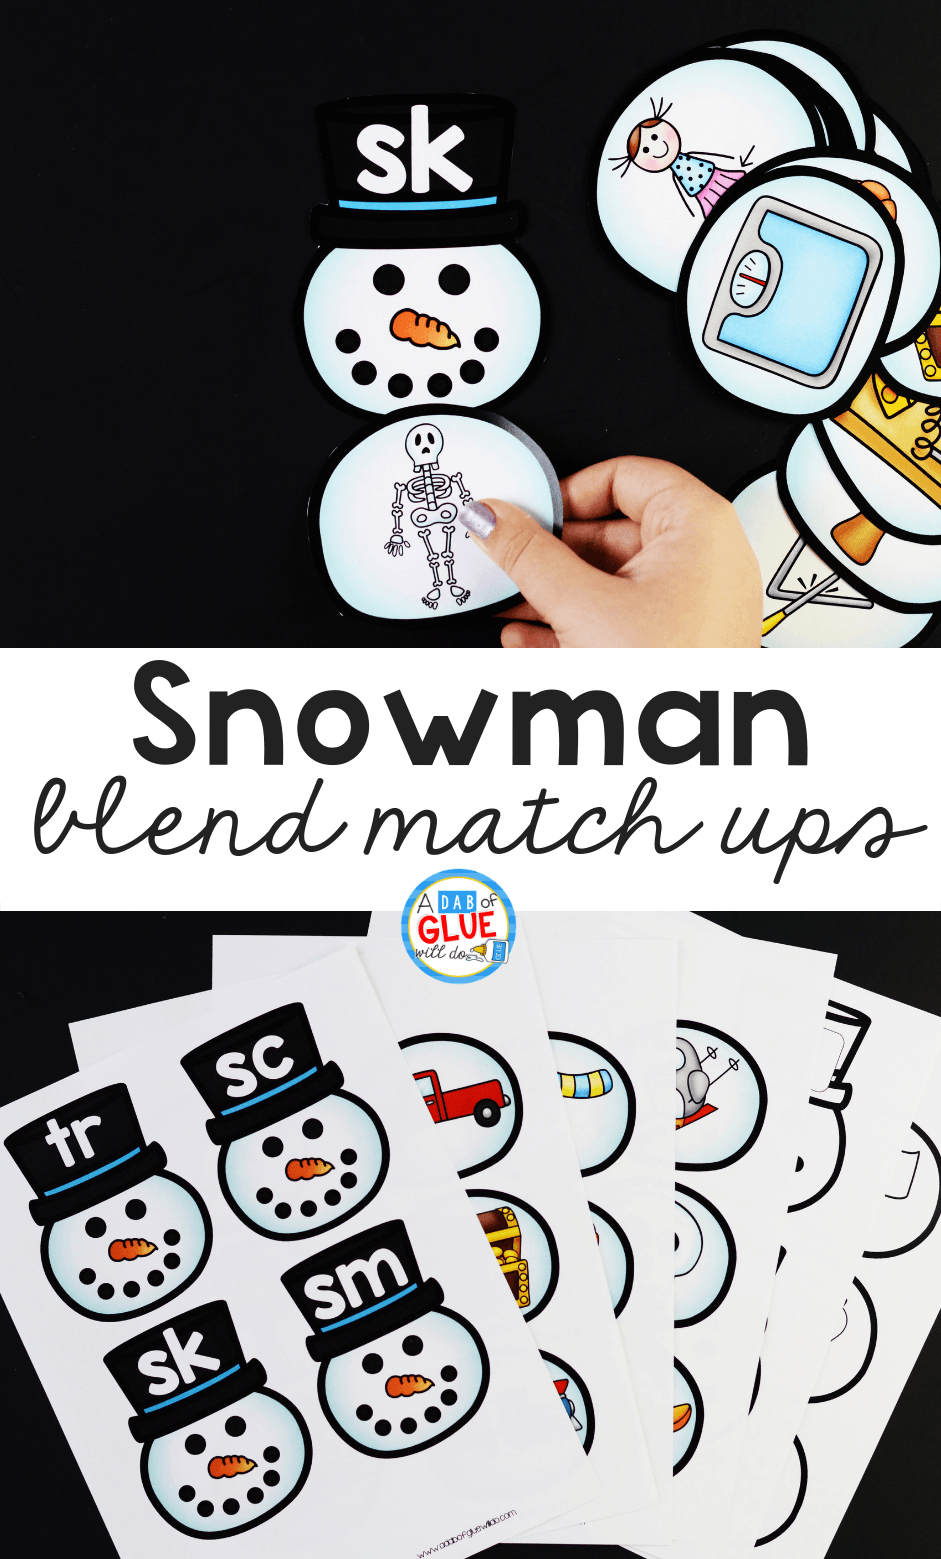 Snowman Blends Match-Up literacy activity is the perfect way to practice blending together individual sounds within words in a hands-on way.